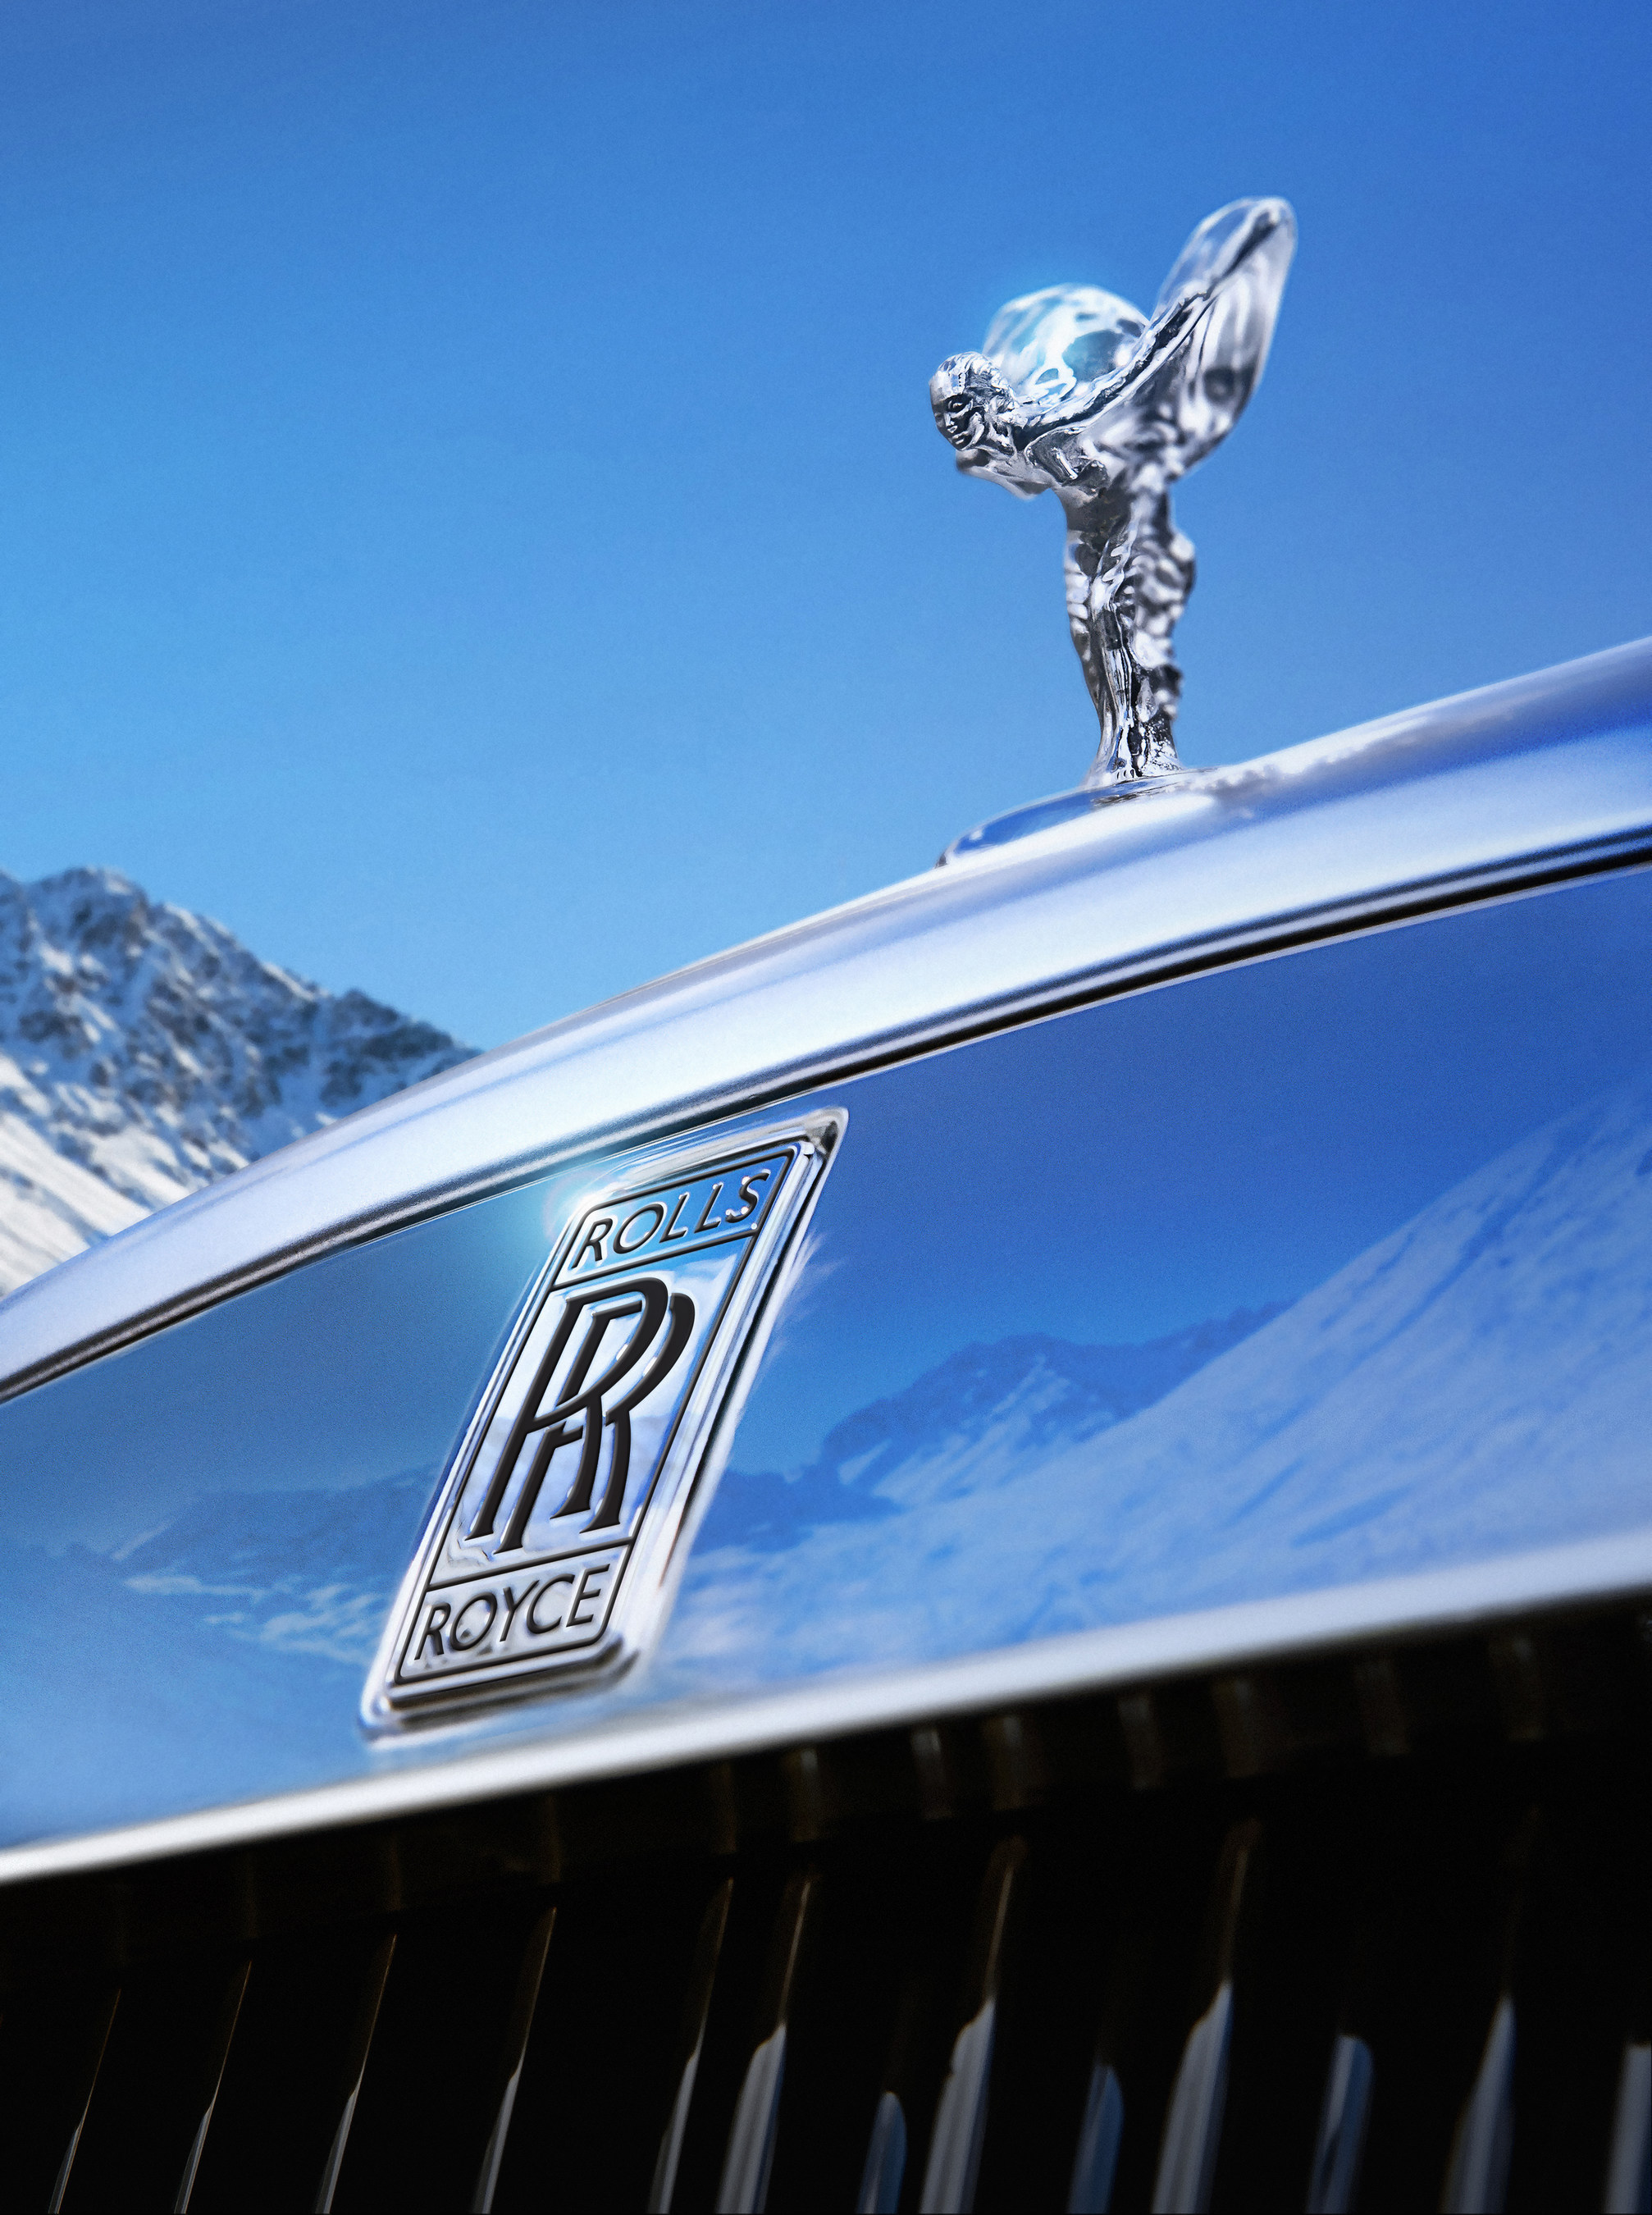 Rolls-Royce Motor Cars confirms today that it is developing an all-new Rolls-Royce with exceptional presence, elegance and purpose. This new design will be #EffortlessEverywhere.